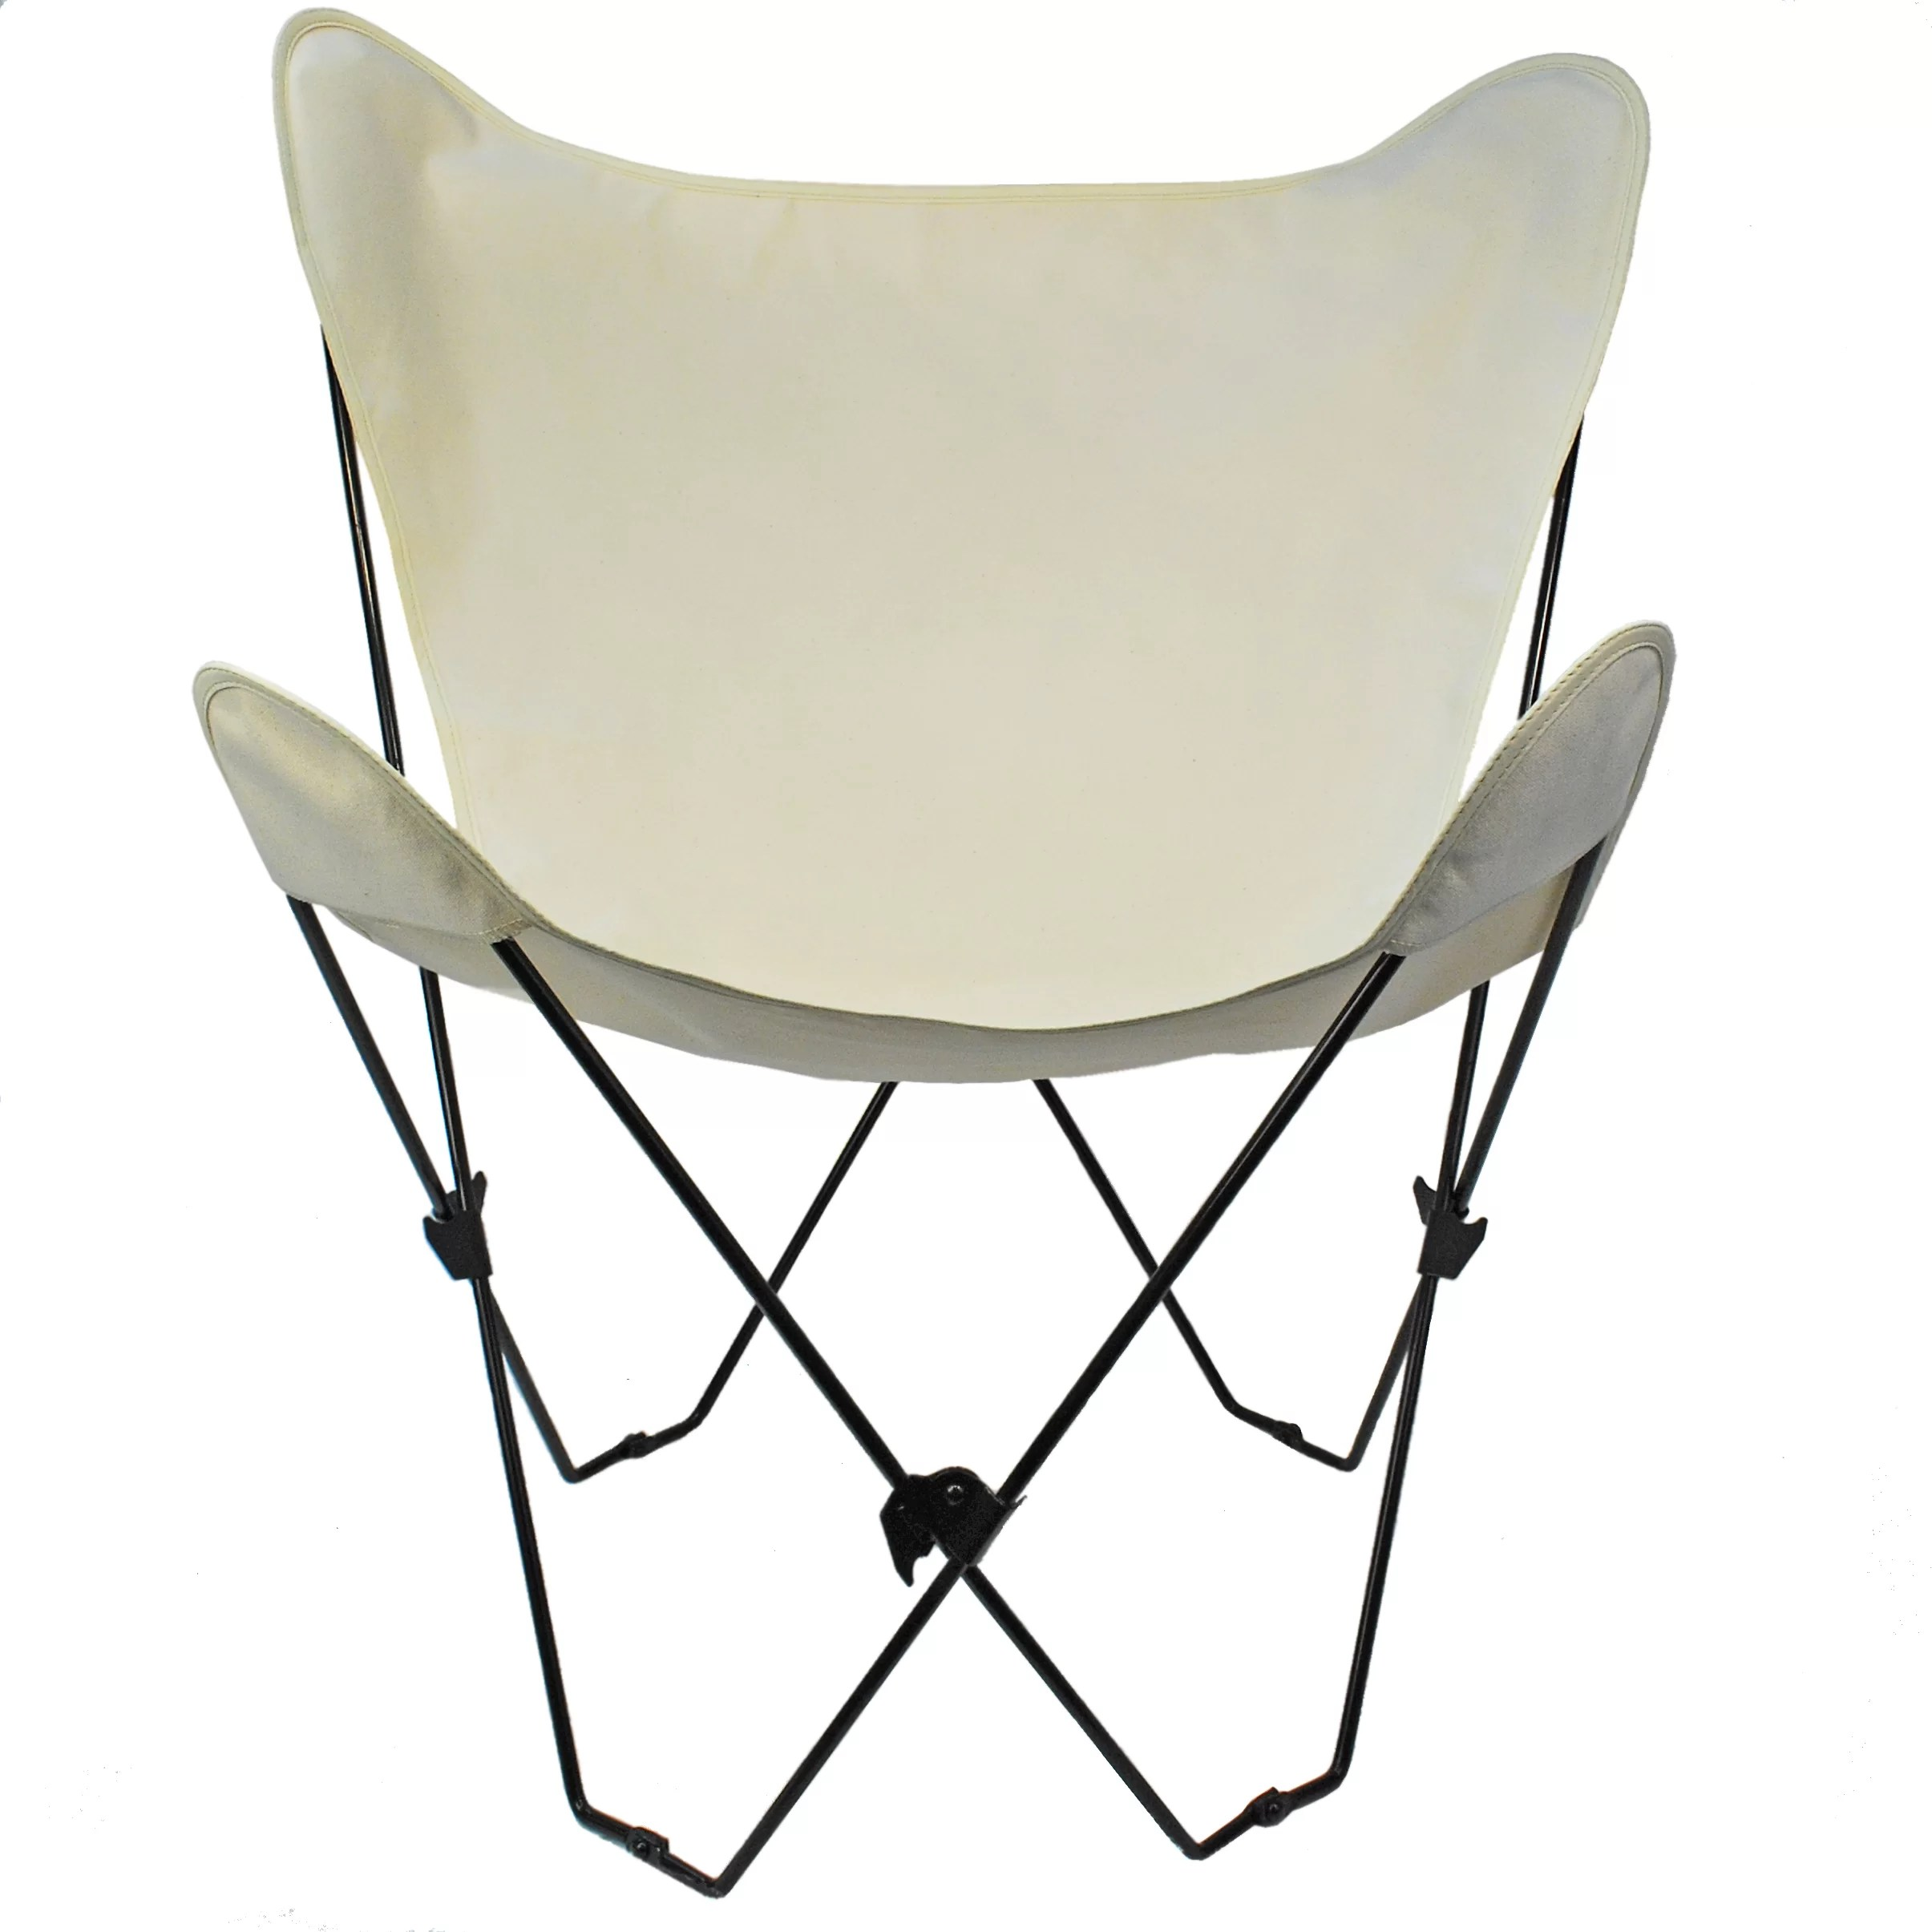 jcpenney desk chair rope swing stand algoma net company butterfly camping and reviews wayfair